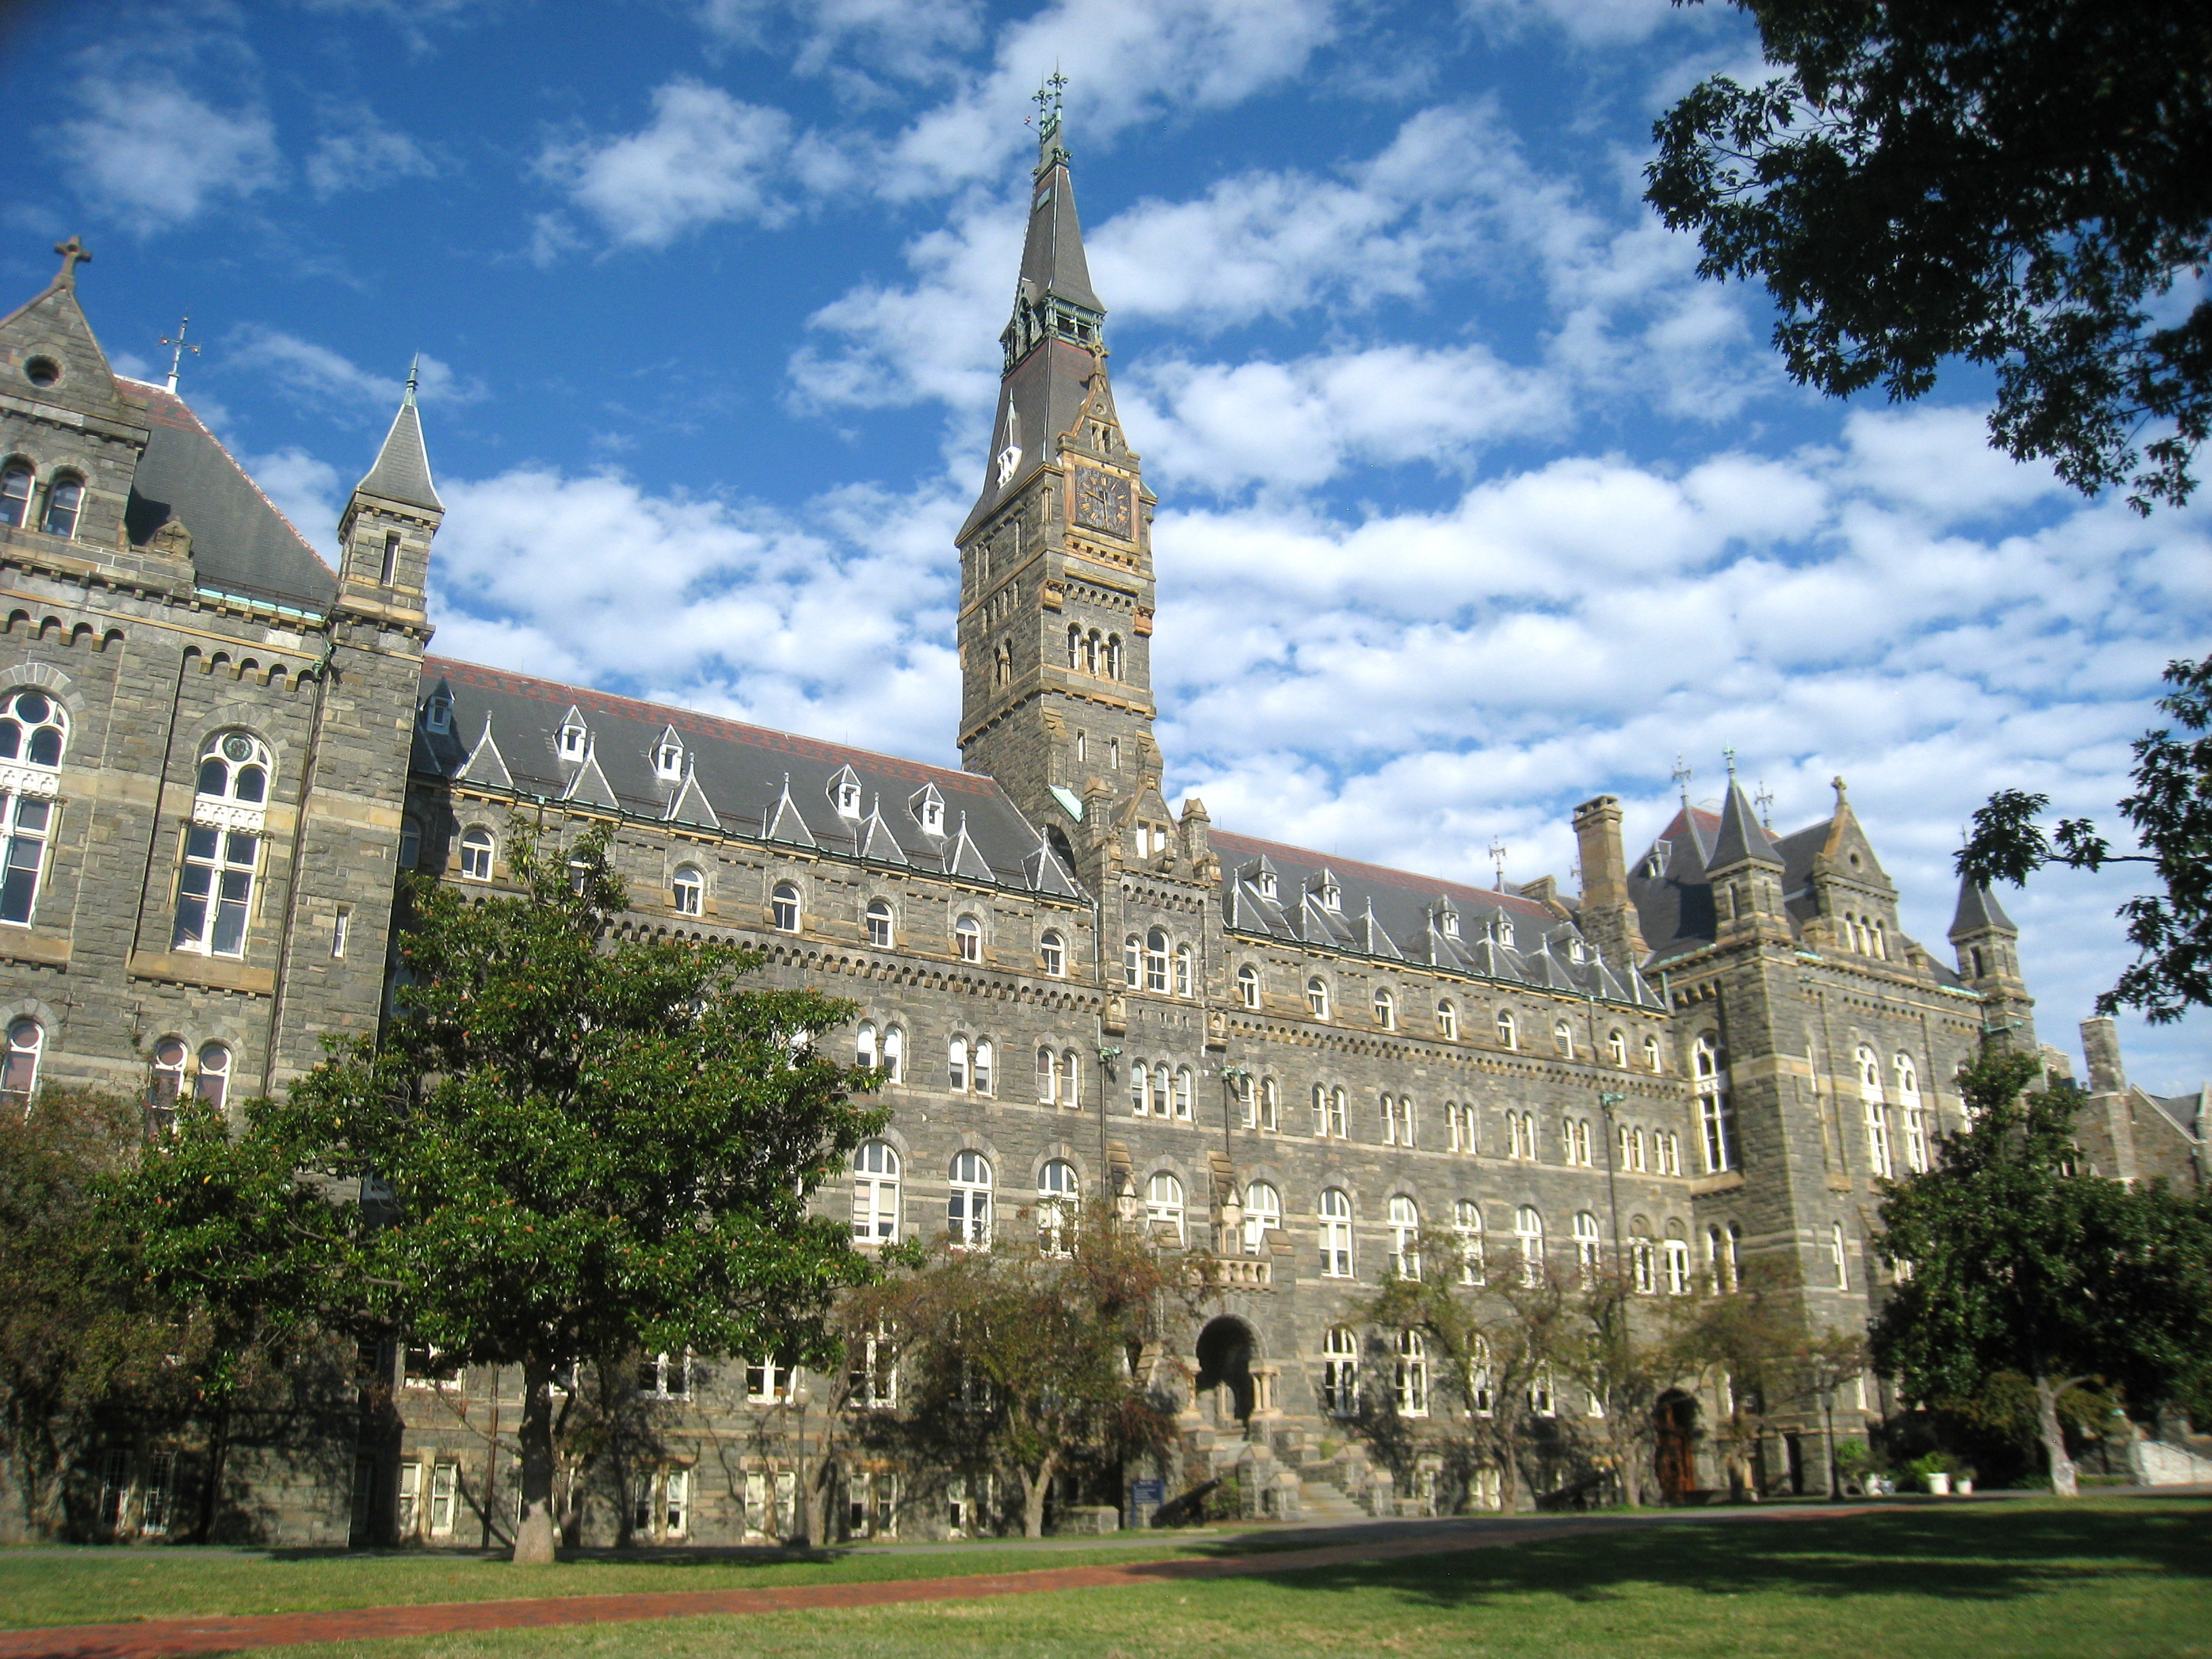 List of colleges and universities in Washington, D.C. ...